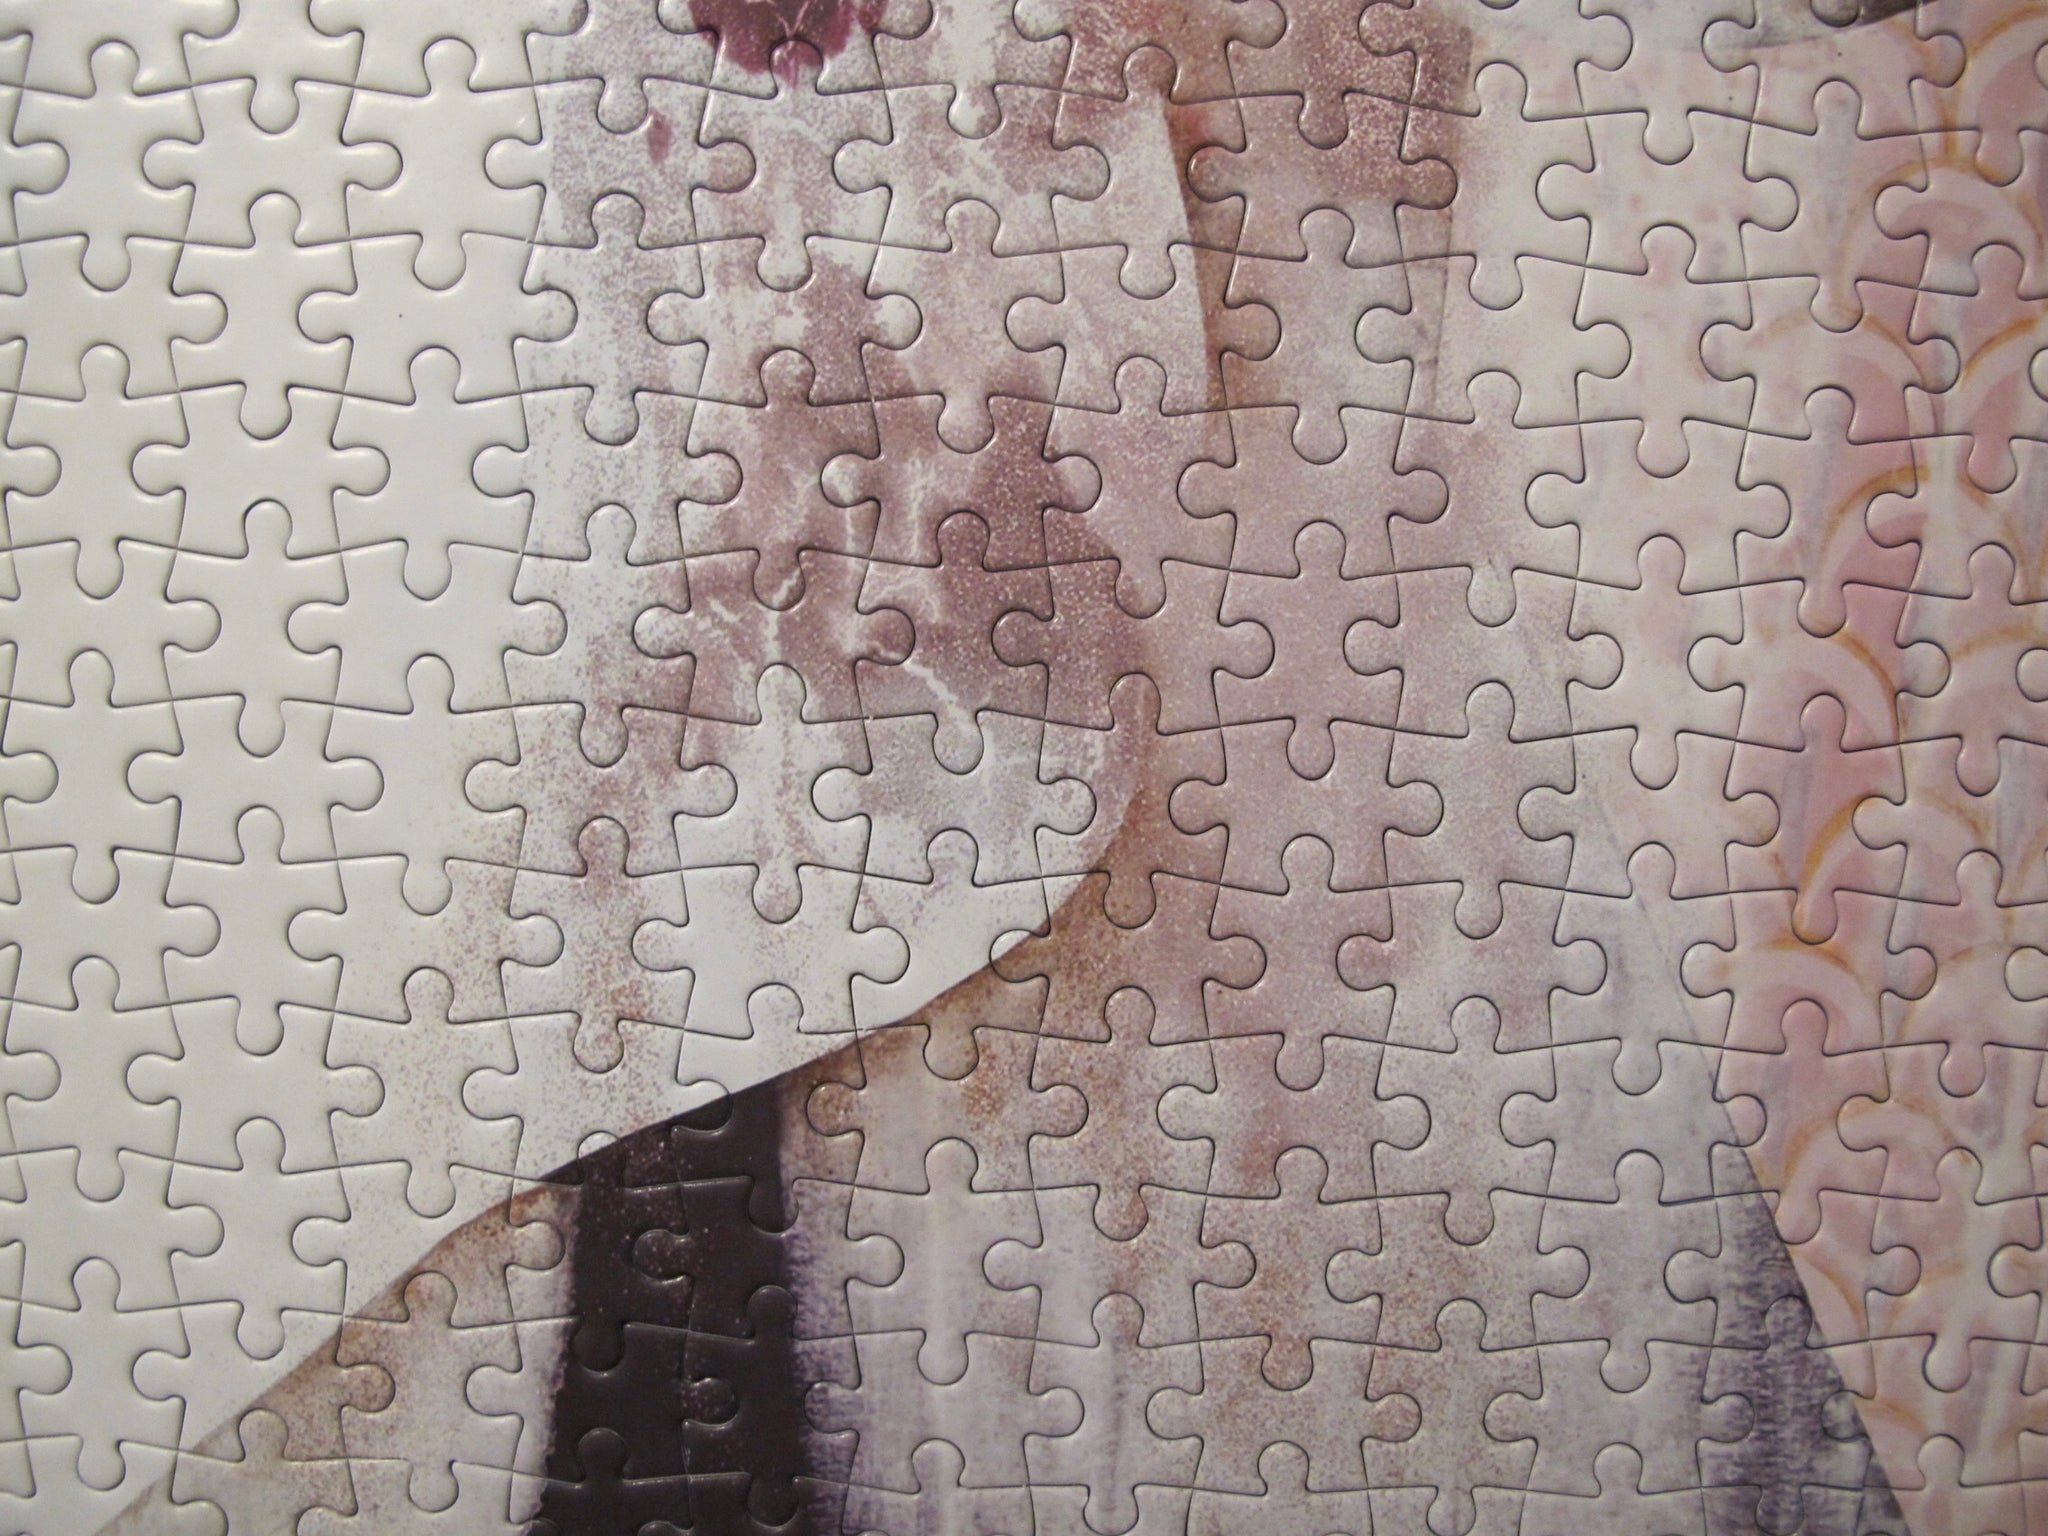 Artist Carrie Moyer Puzzle: Unlimited Collector Edition Jigsaw Puzzle